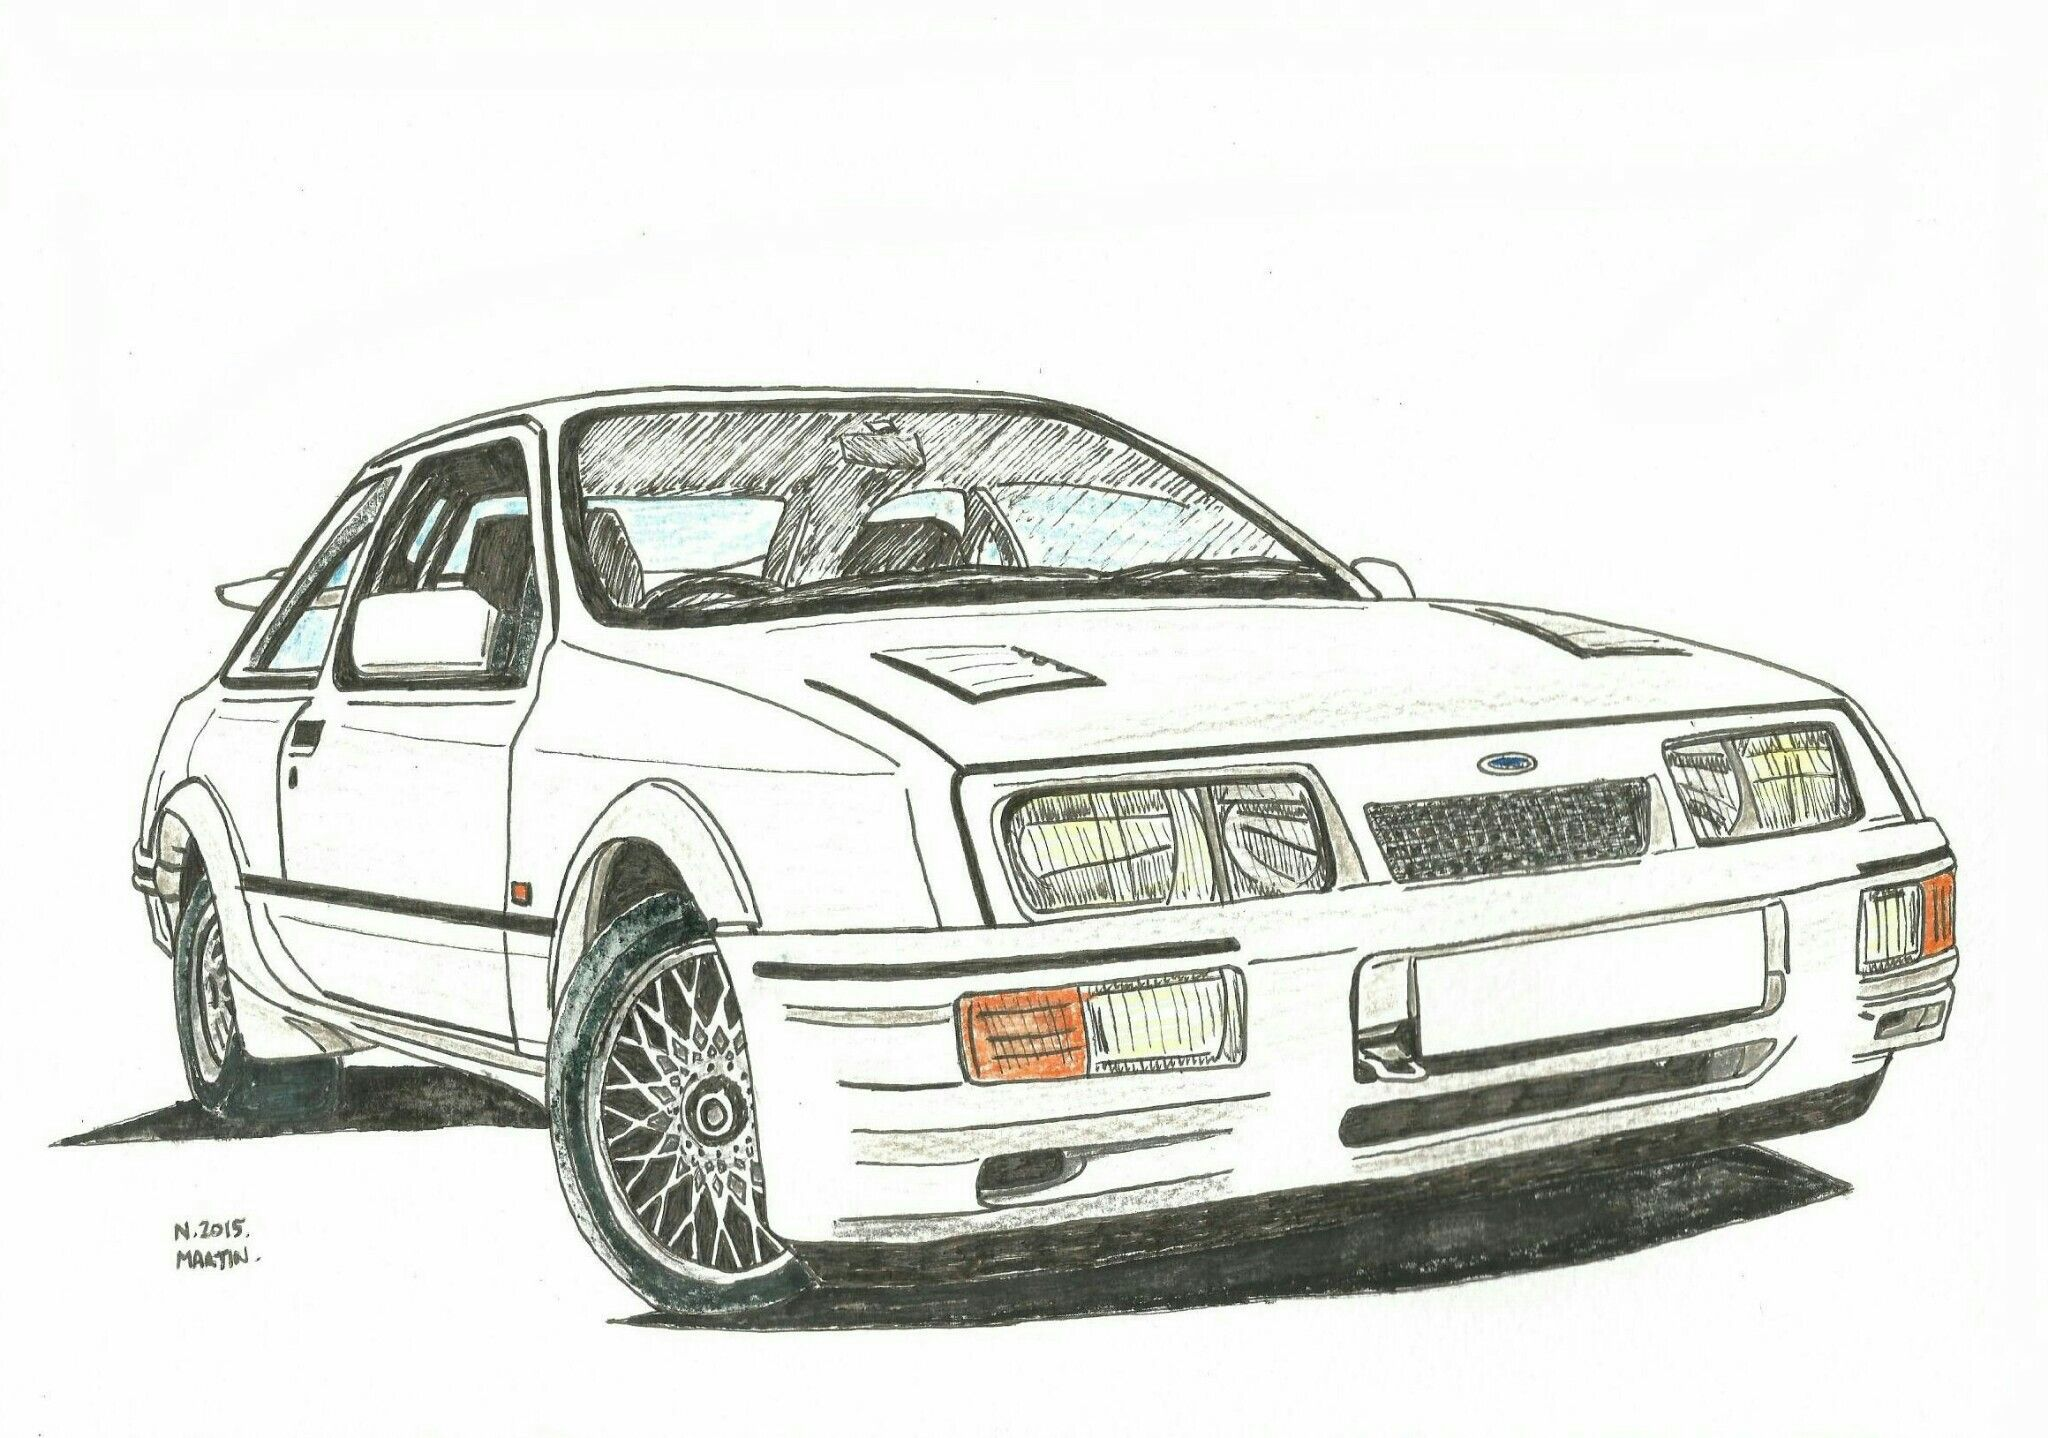 Ford Sierra Rs Cosworth Drawing My Drawing Of A Ford Sierra Rs Cosworth Using Watercolour Pencils And Pen On Watercolour Paper Please Contact Me If You Would